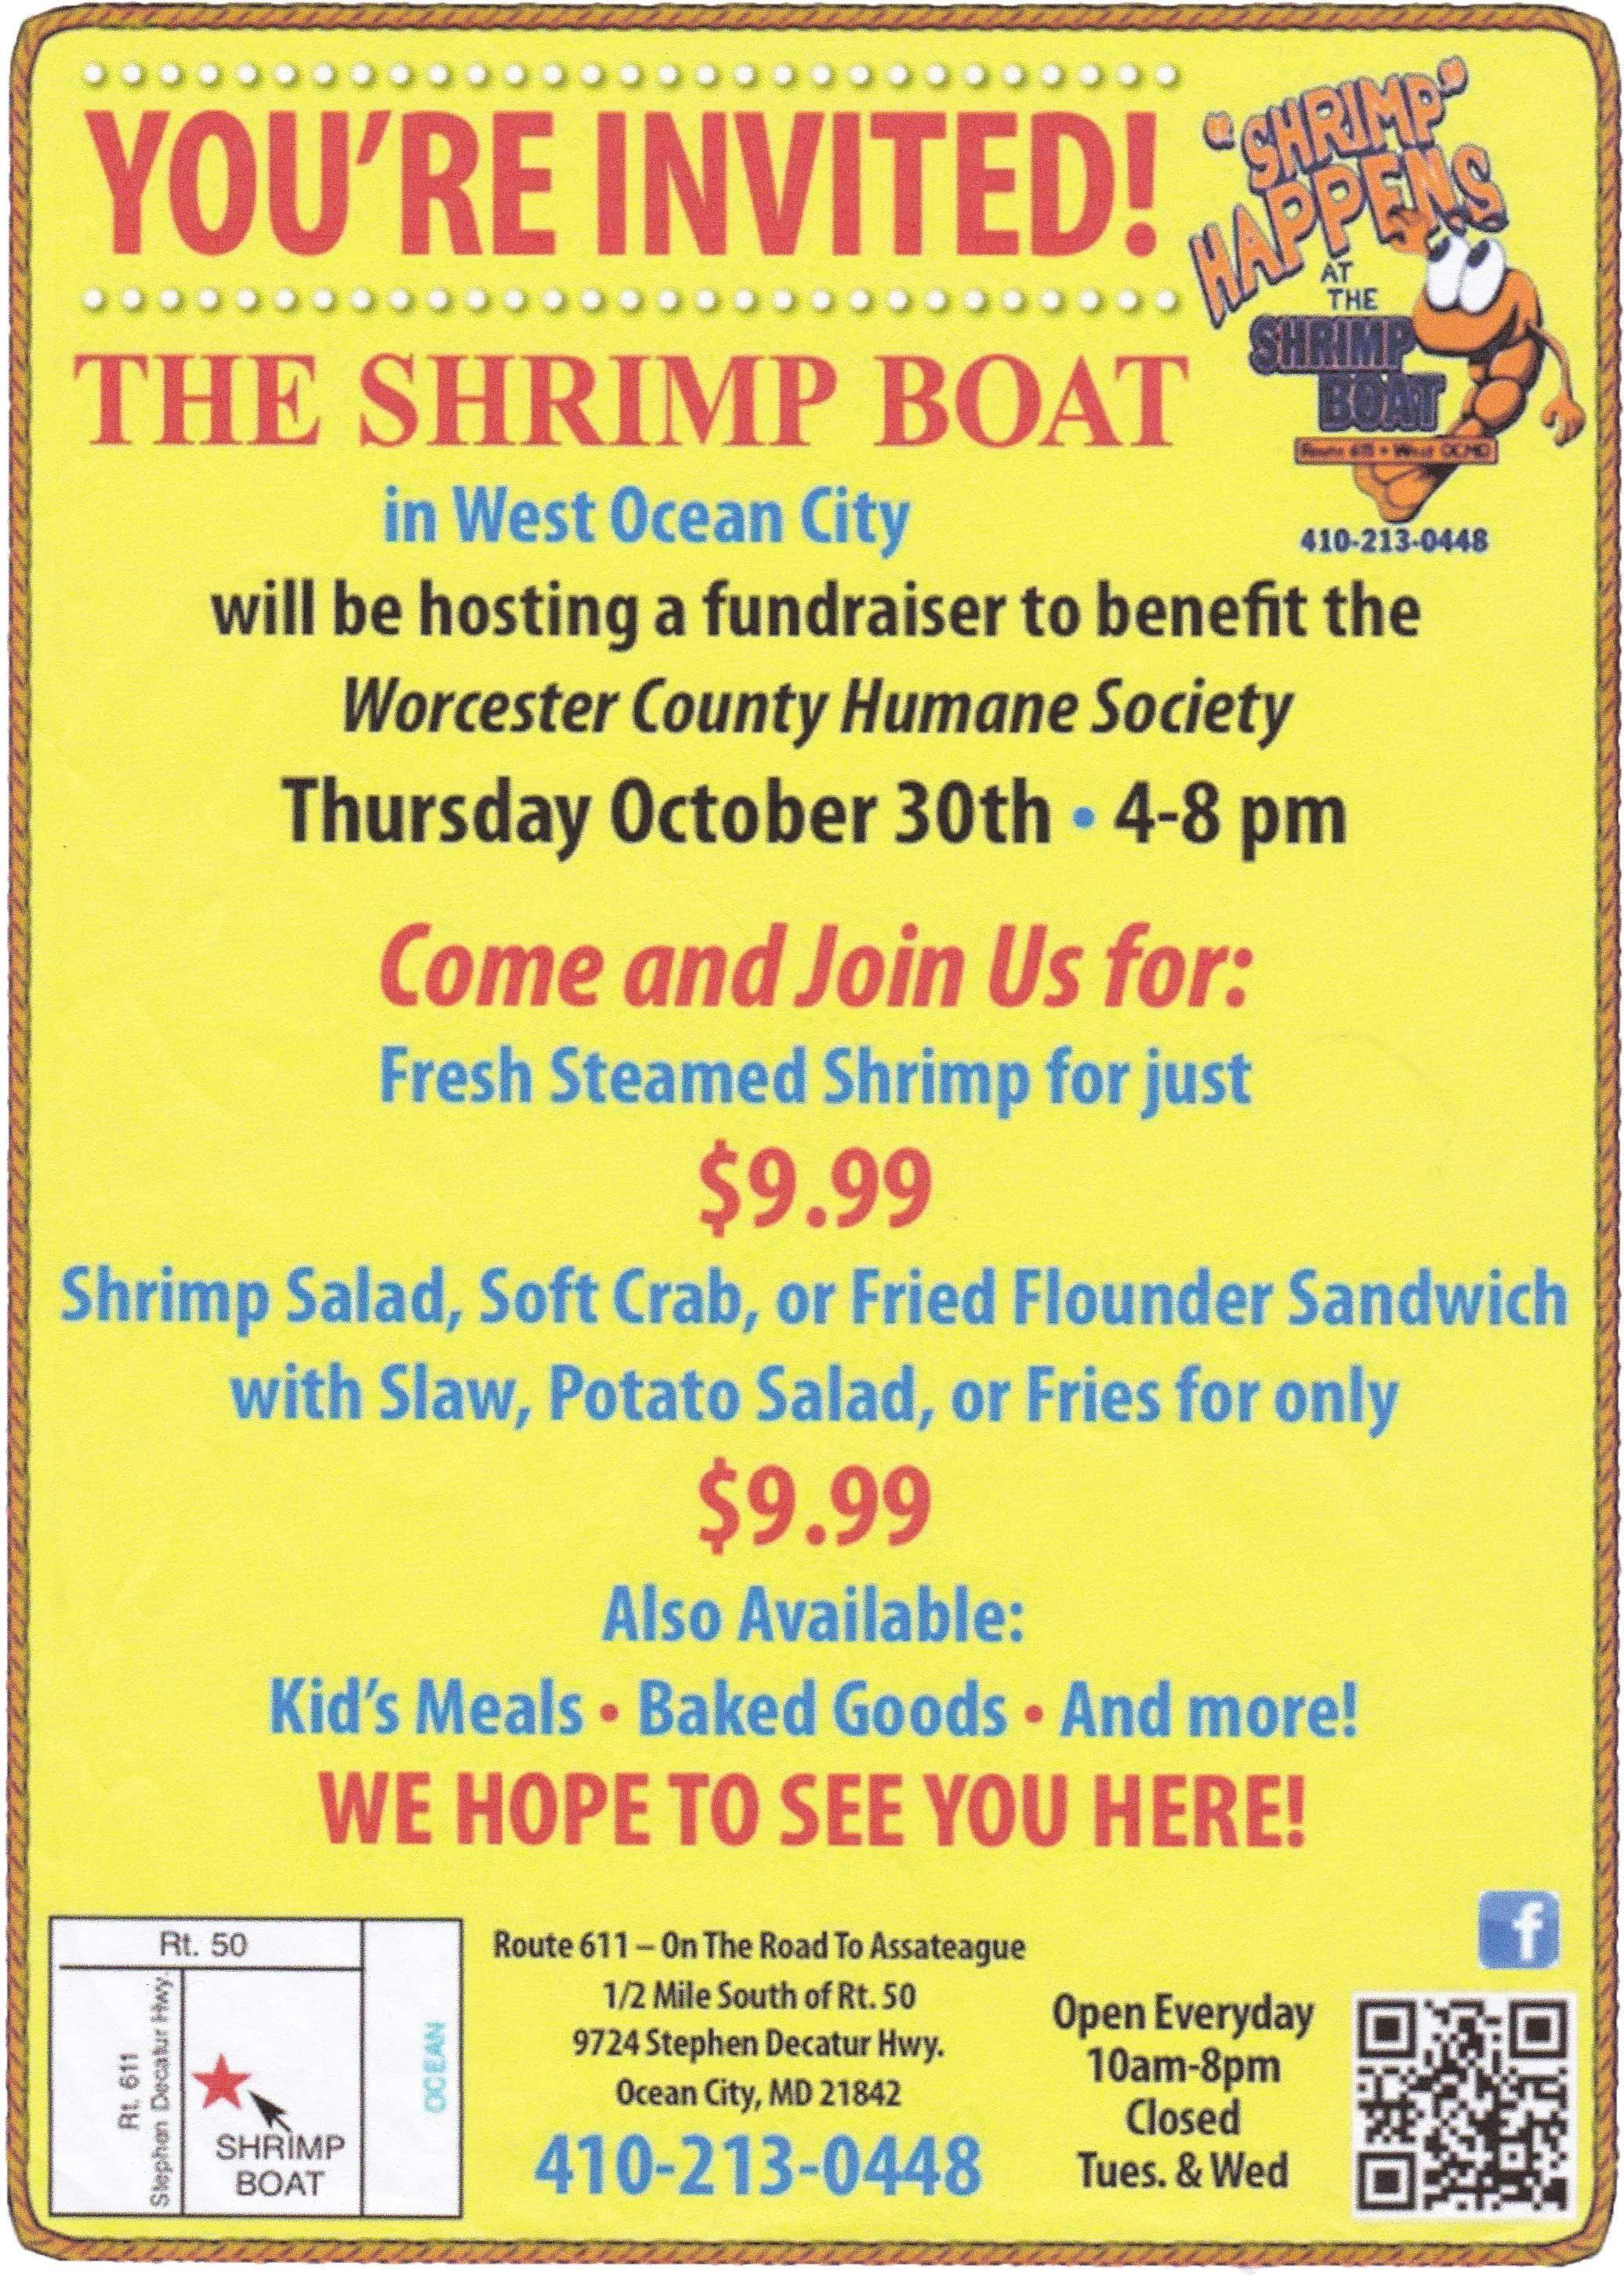 shrimp boat fundraiser Worcester County Humane Society